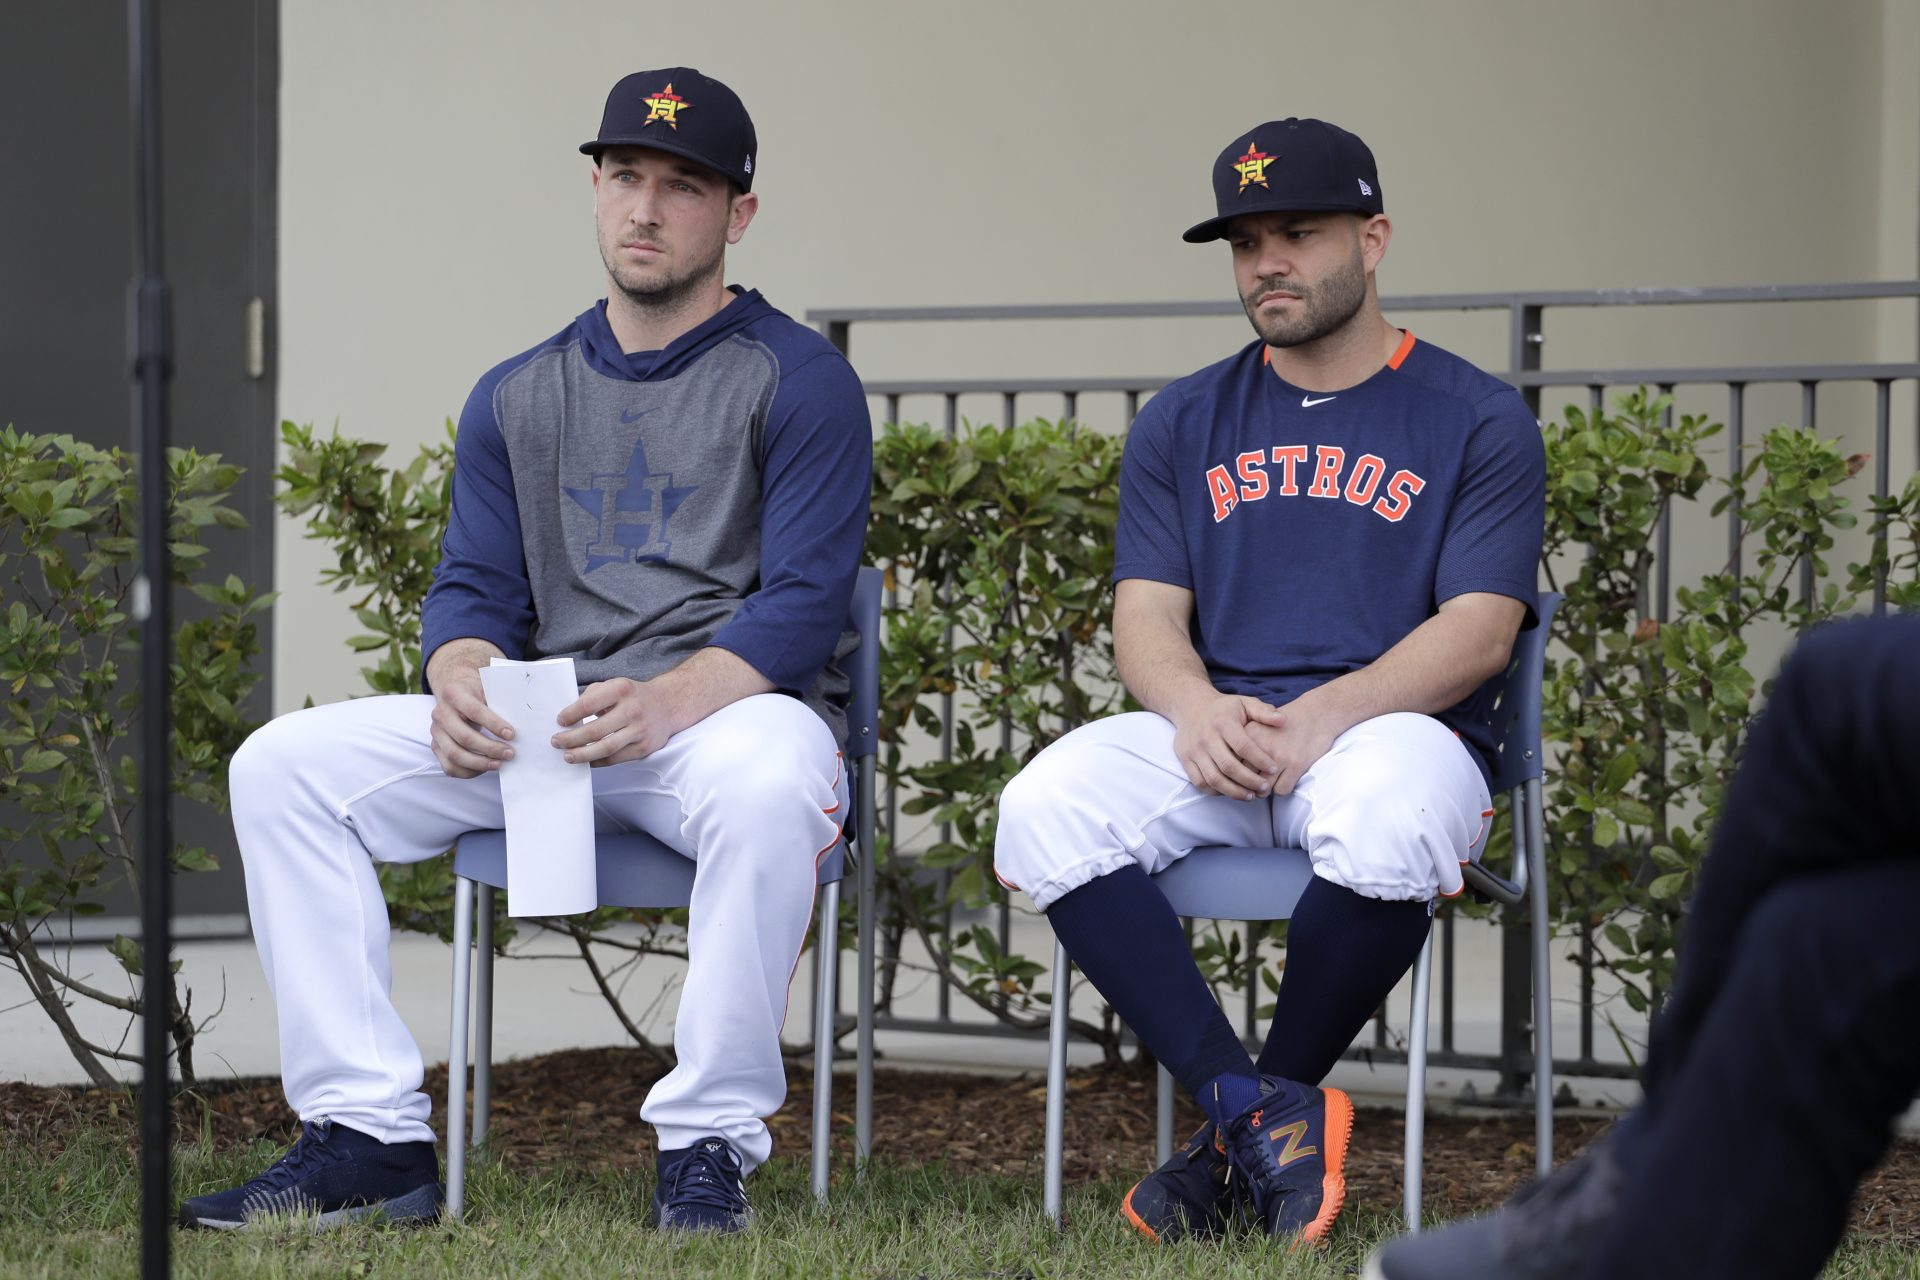 Houston Astros infielder Alex Bregman, left, and teammate Jose Altuve sit in chairs as the wait to deliver statements during a news conference before the start of the first official spring training baseball practice for the team Thursday, Feb. 13, 2020, in West Palm Beach, Fla.